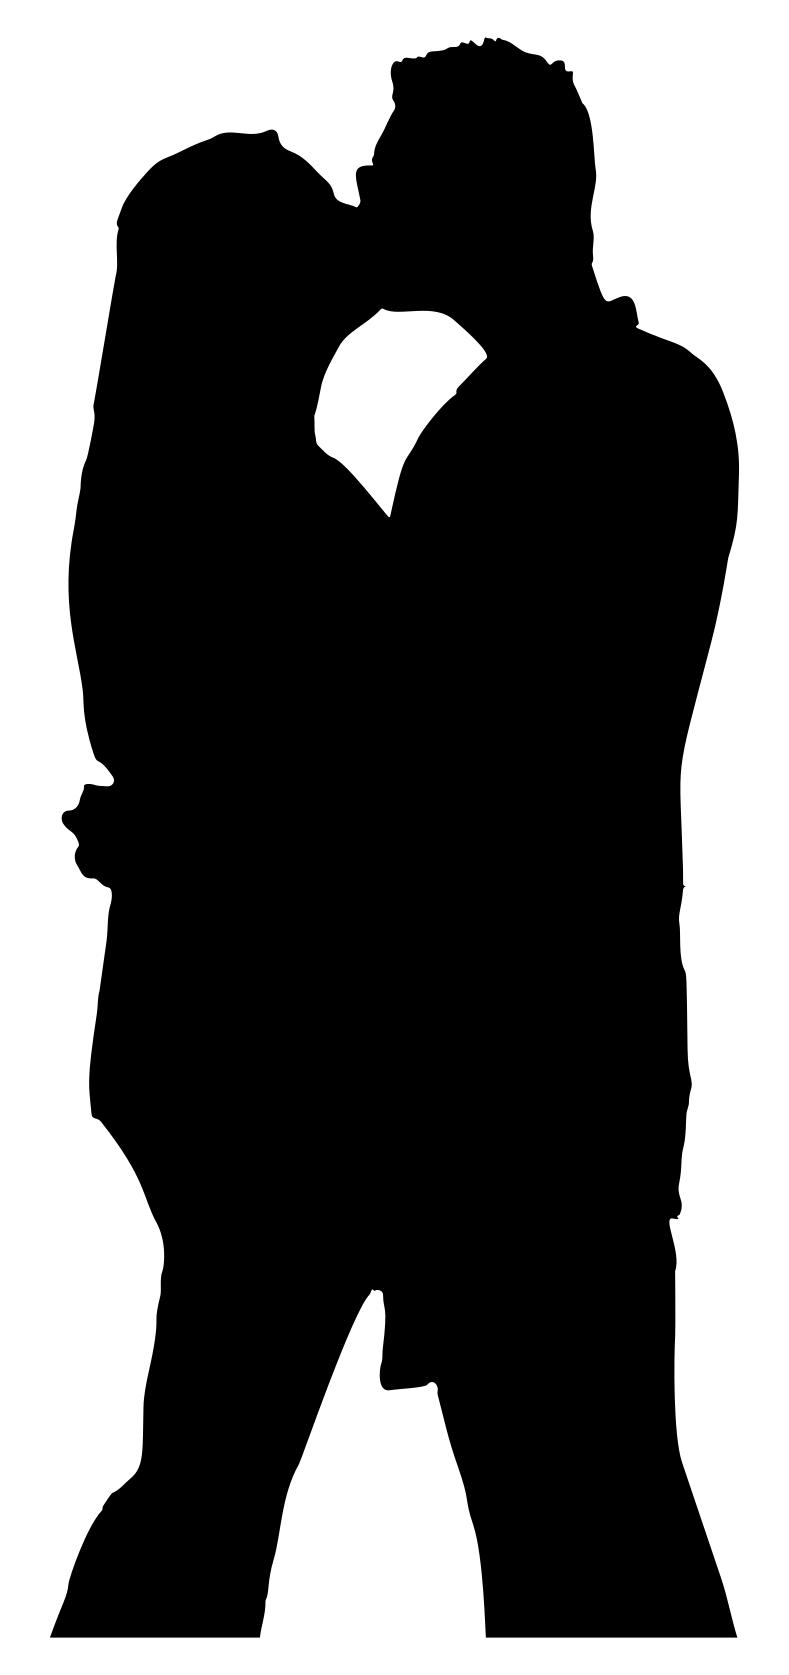 789x1675 Couple Hugging And Kissing Silhouette Clipart